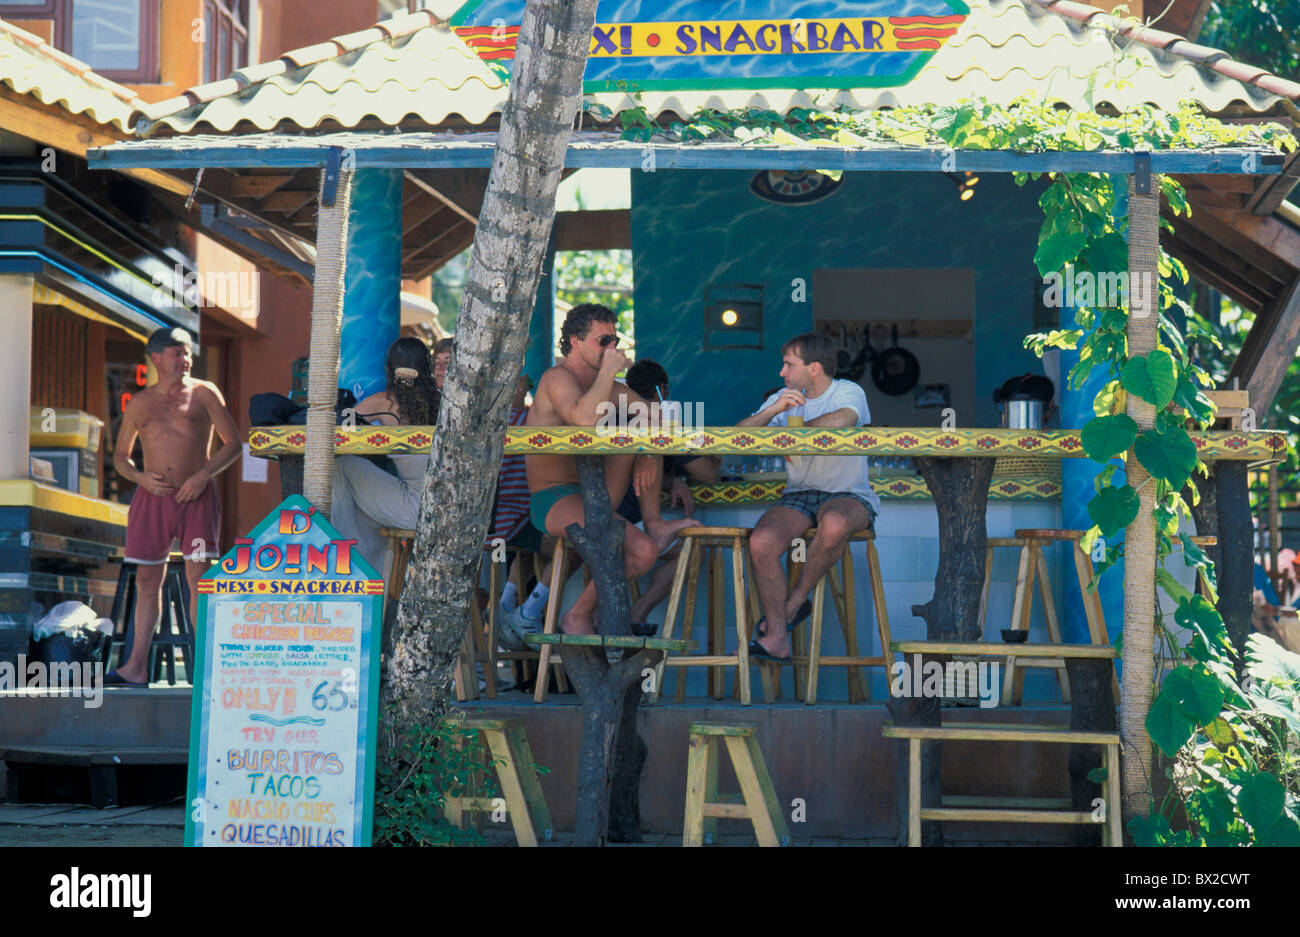 Runable aground Bar guests company tourists tourism holidays vacation catering Punta Cana Dominican Republic - Stock Image